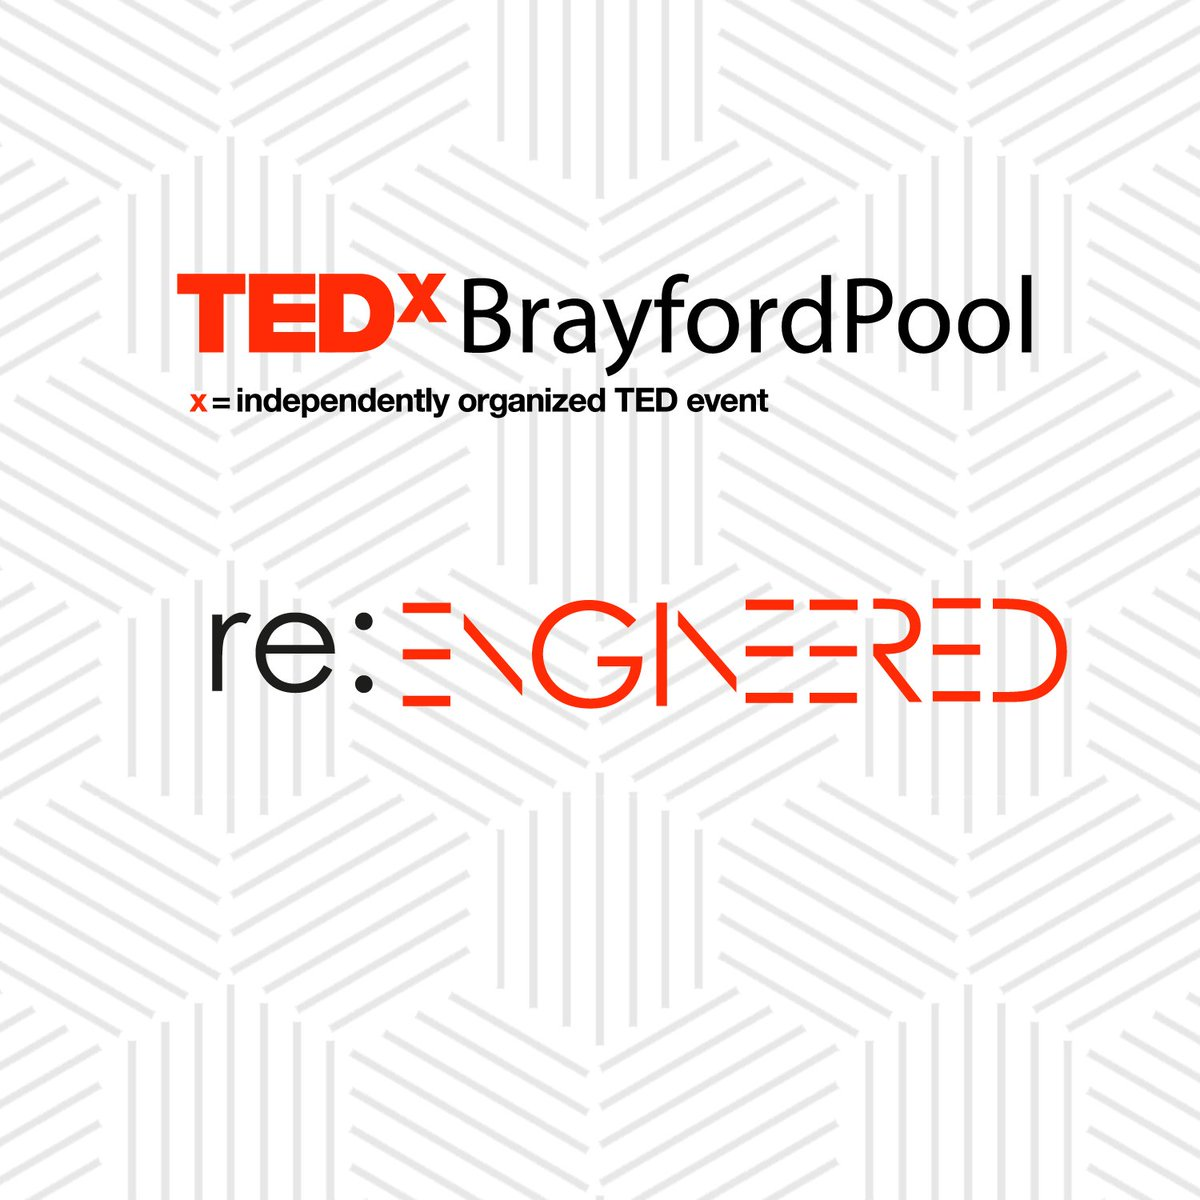 Really looking forward to hosting this excellent event again this year with my fellow host and TEDx speaker coach @tee_katy #TEDxBrayfordpl